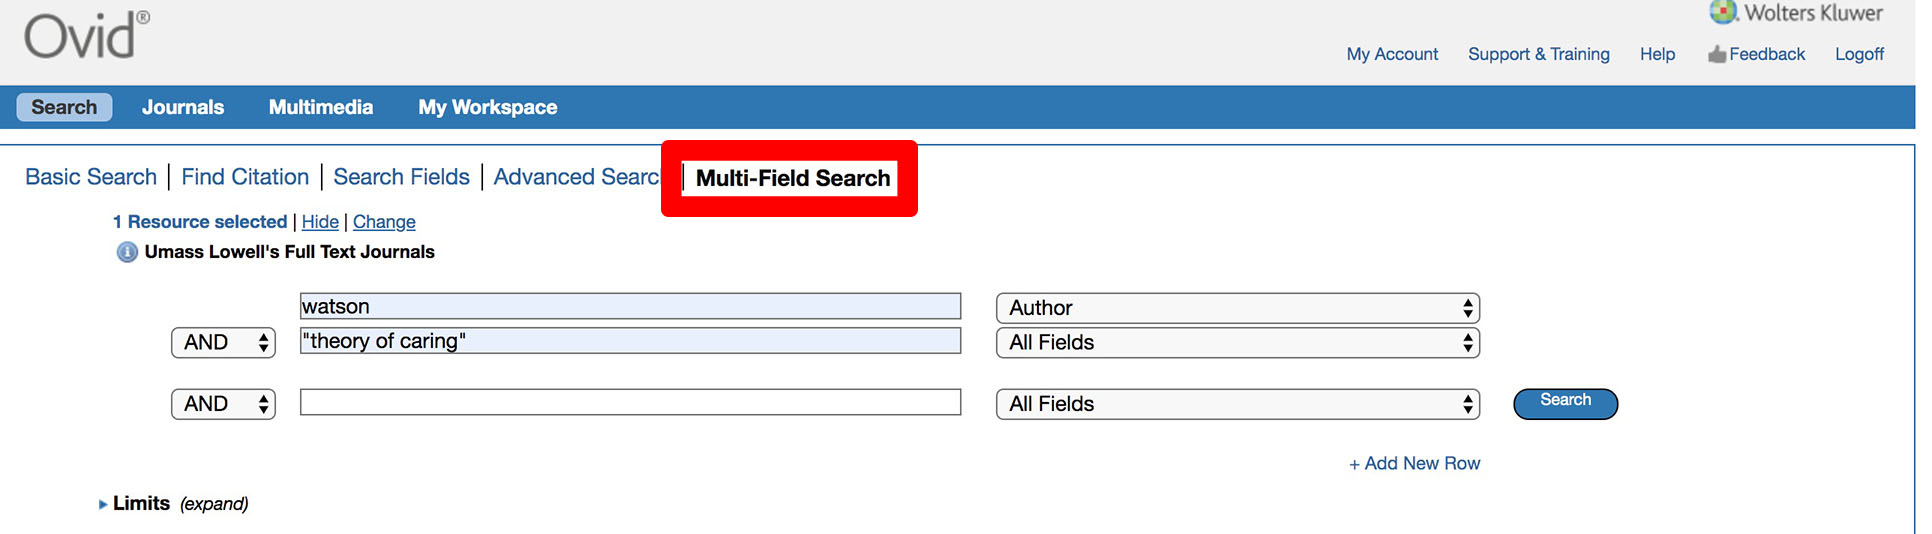 Example of the multi-field search for a nursing theory.